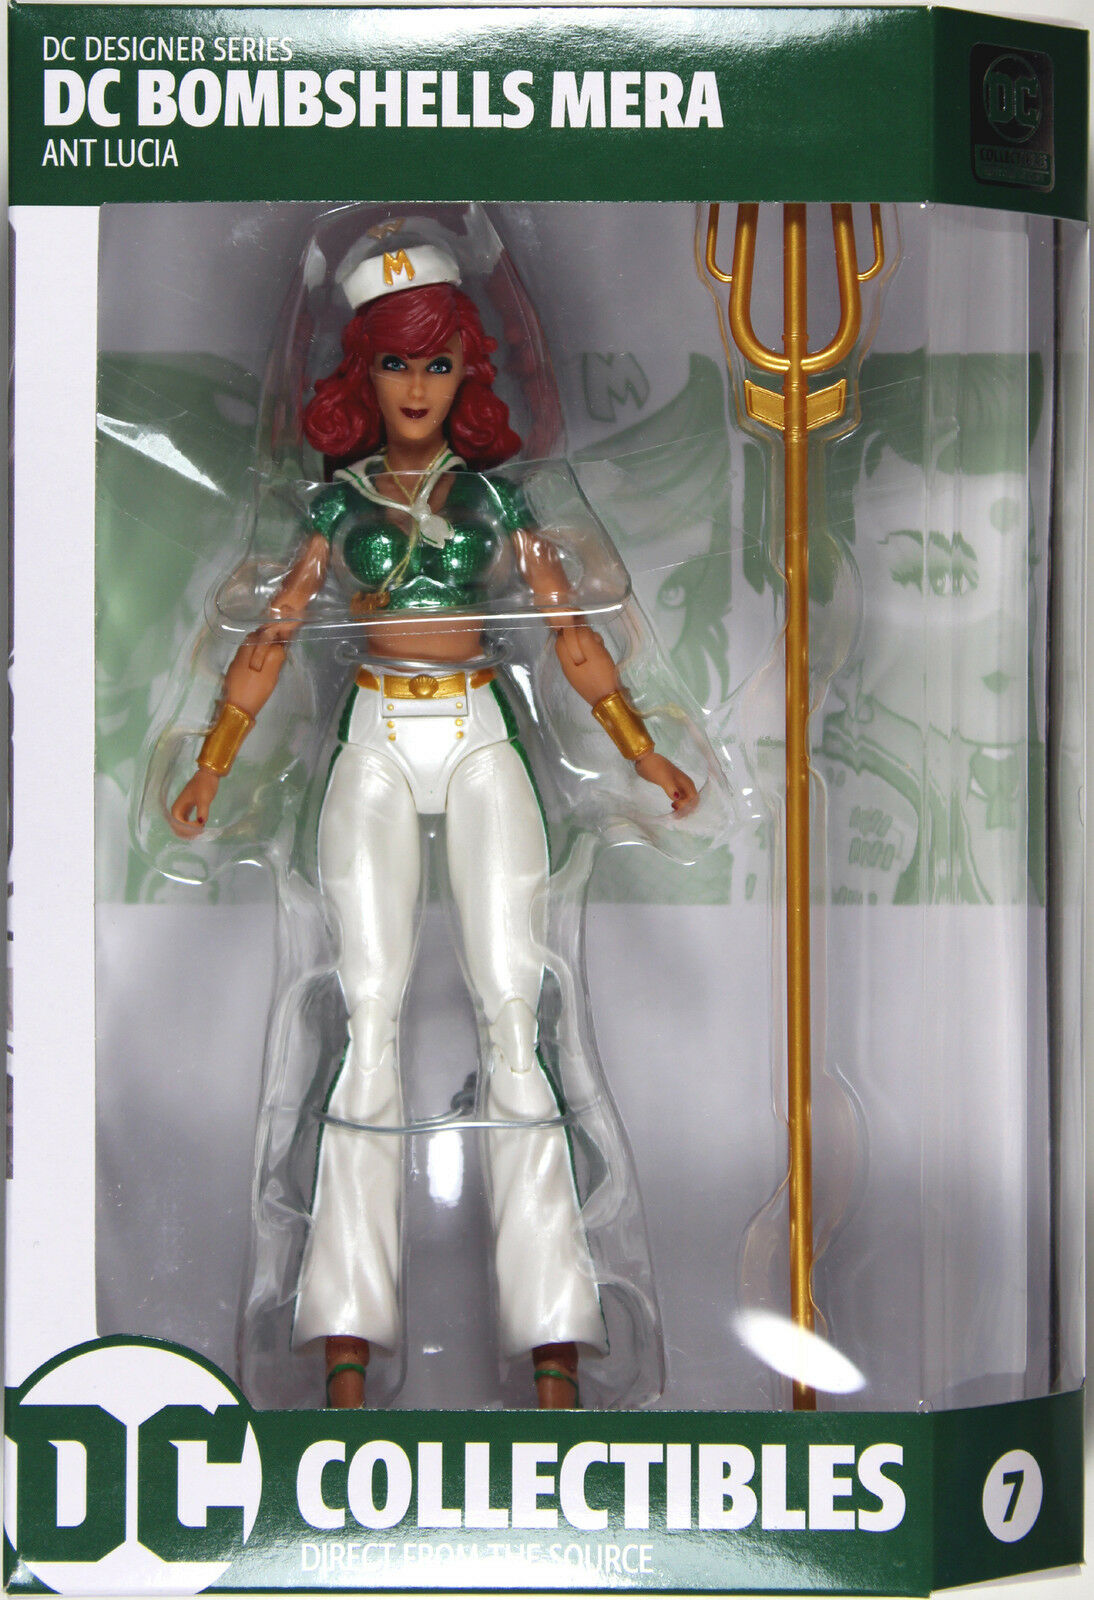 DC Bombshells  MERA ACTION FIGURE  DC Collectibles Ant Lucia